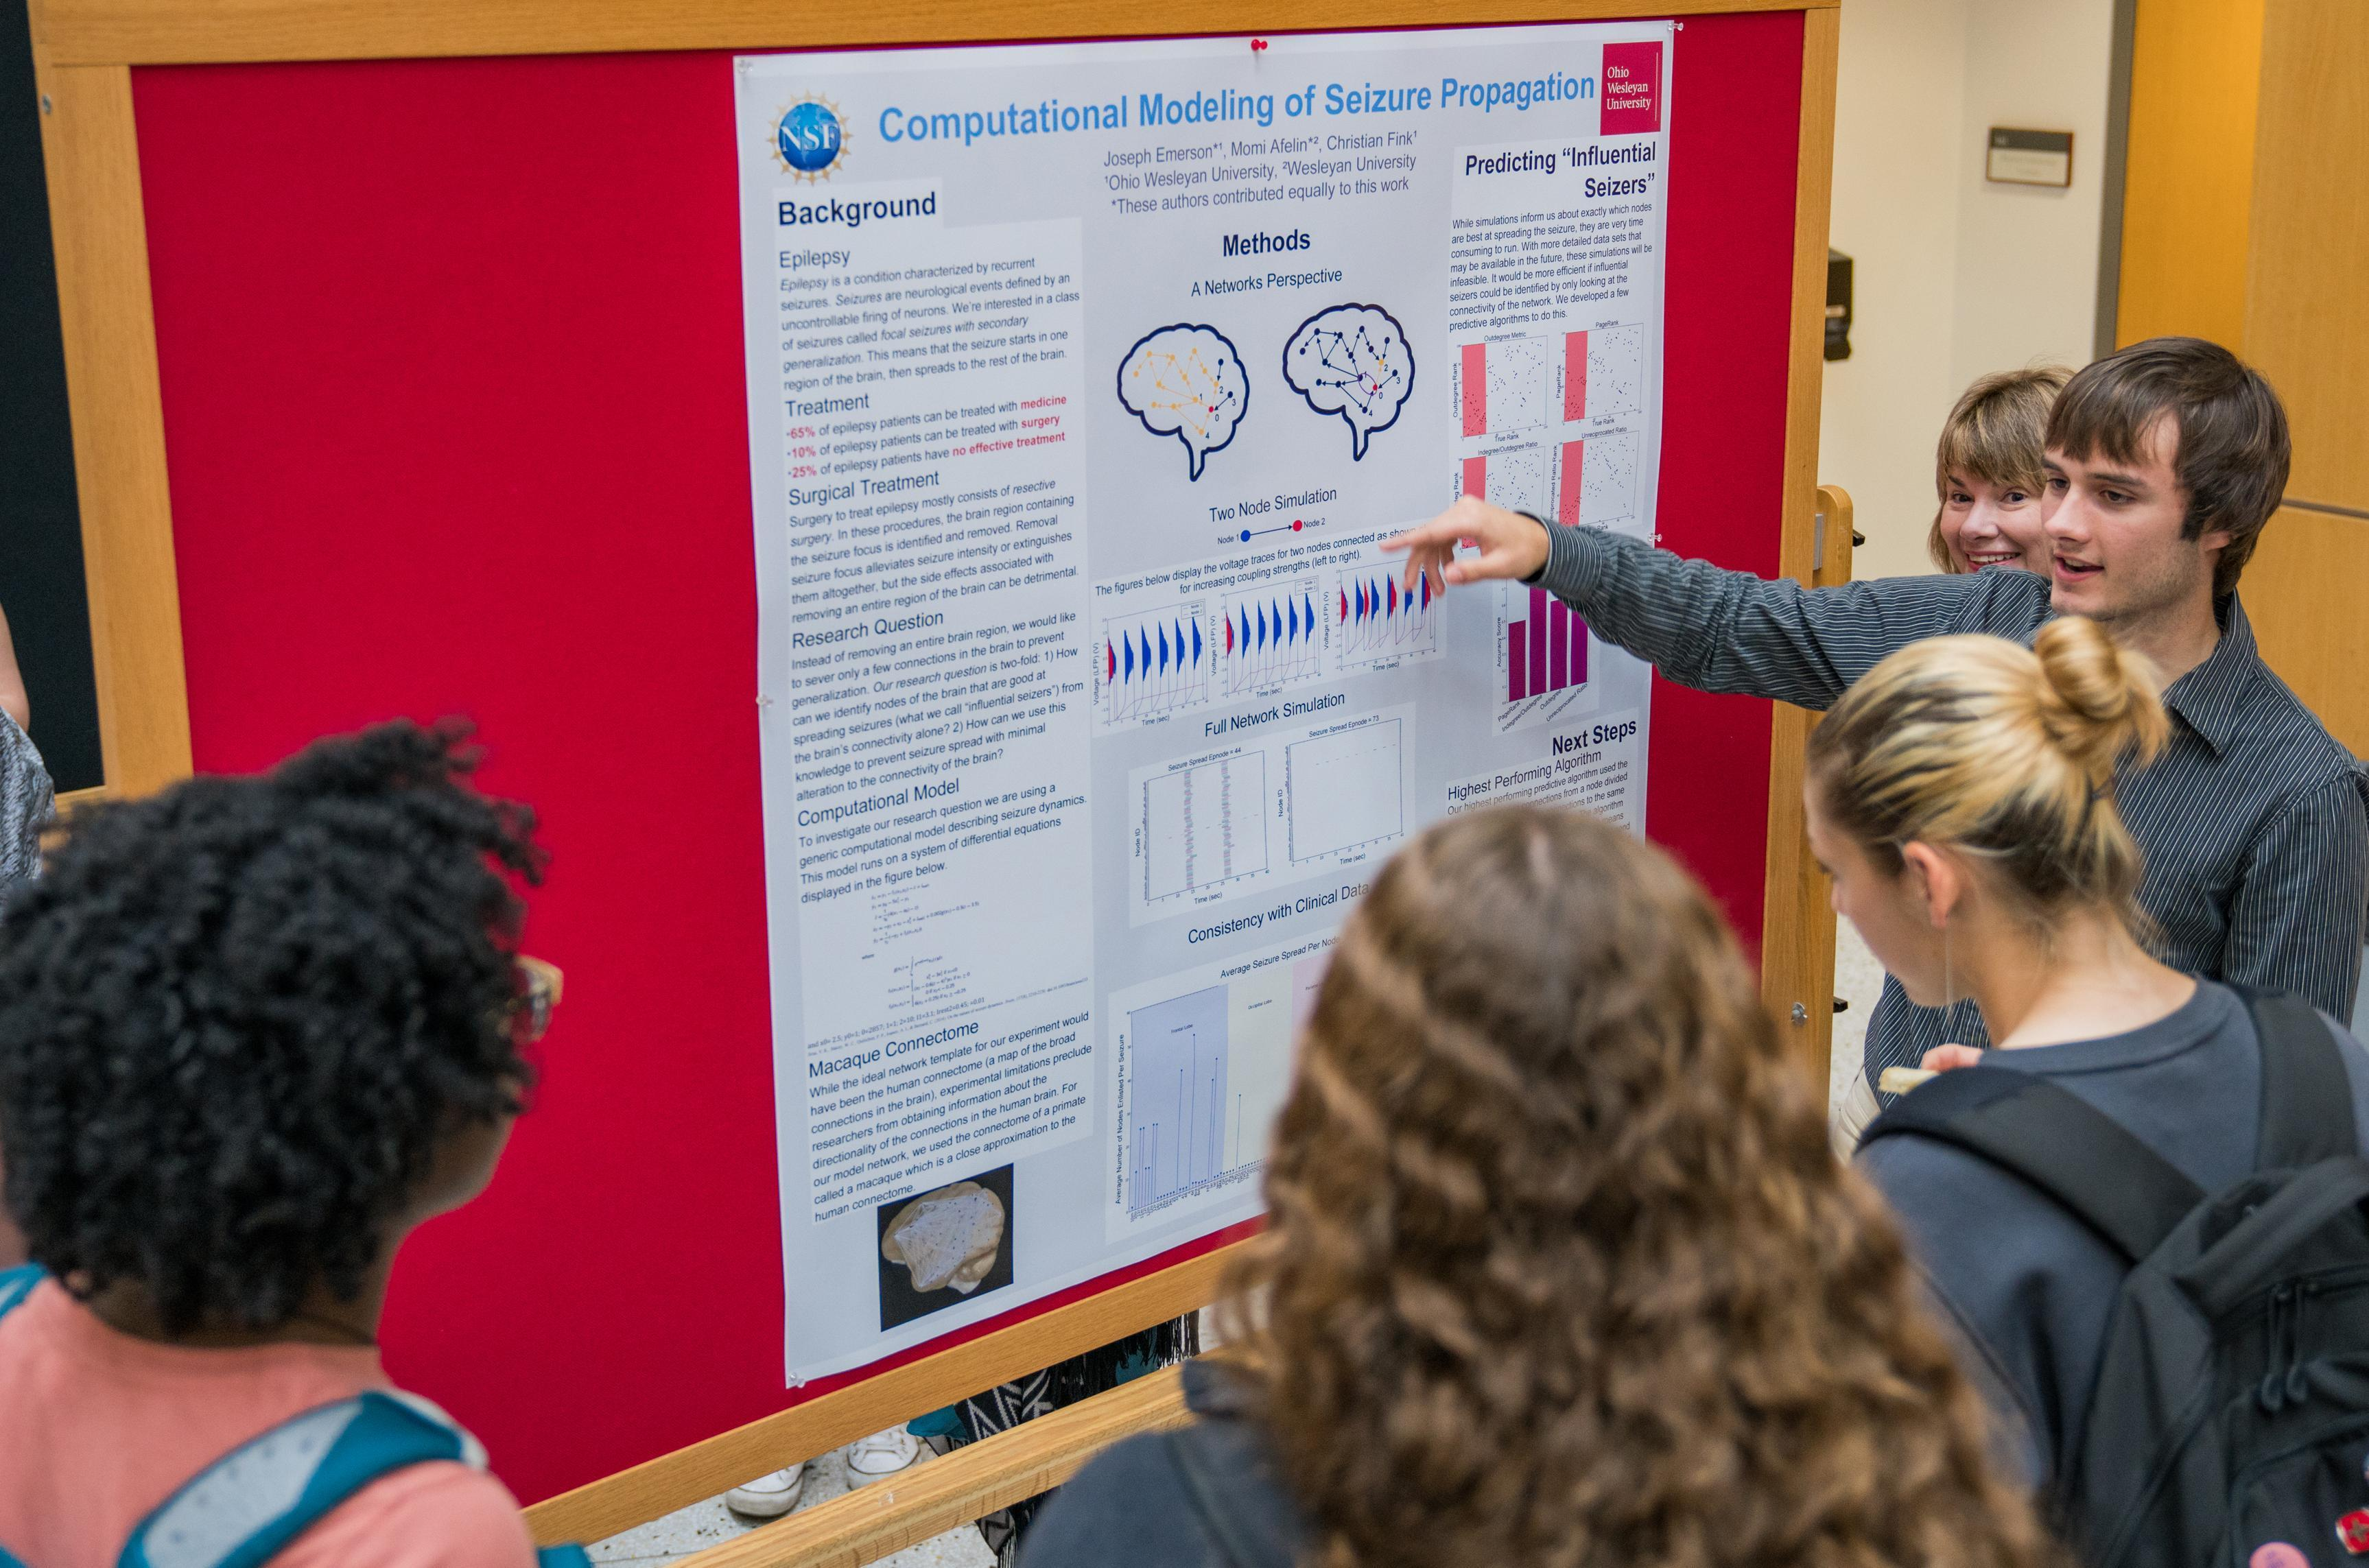 Ohio wesleyan summer science research symposium